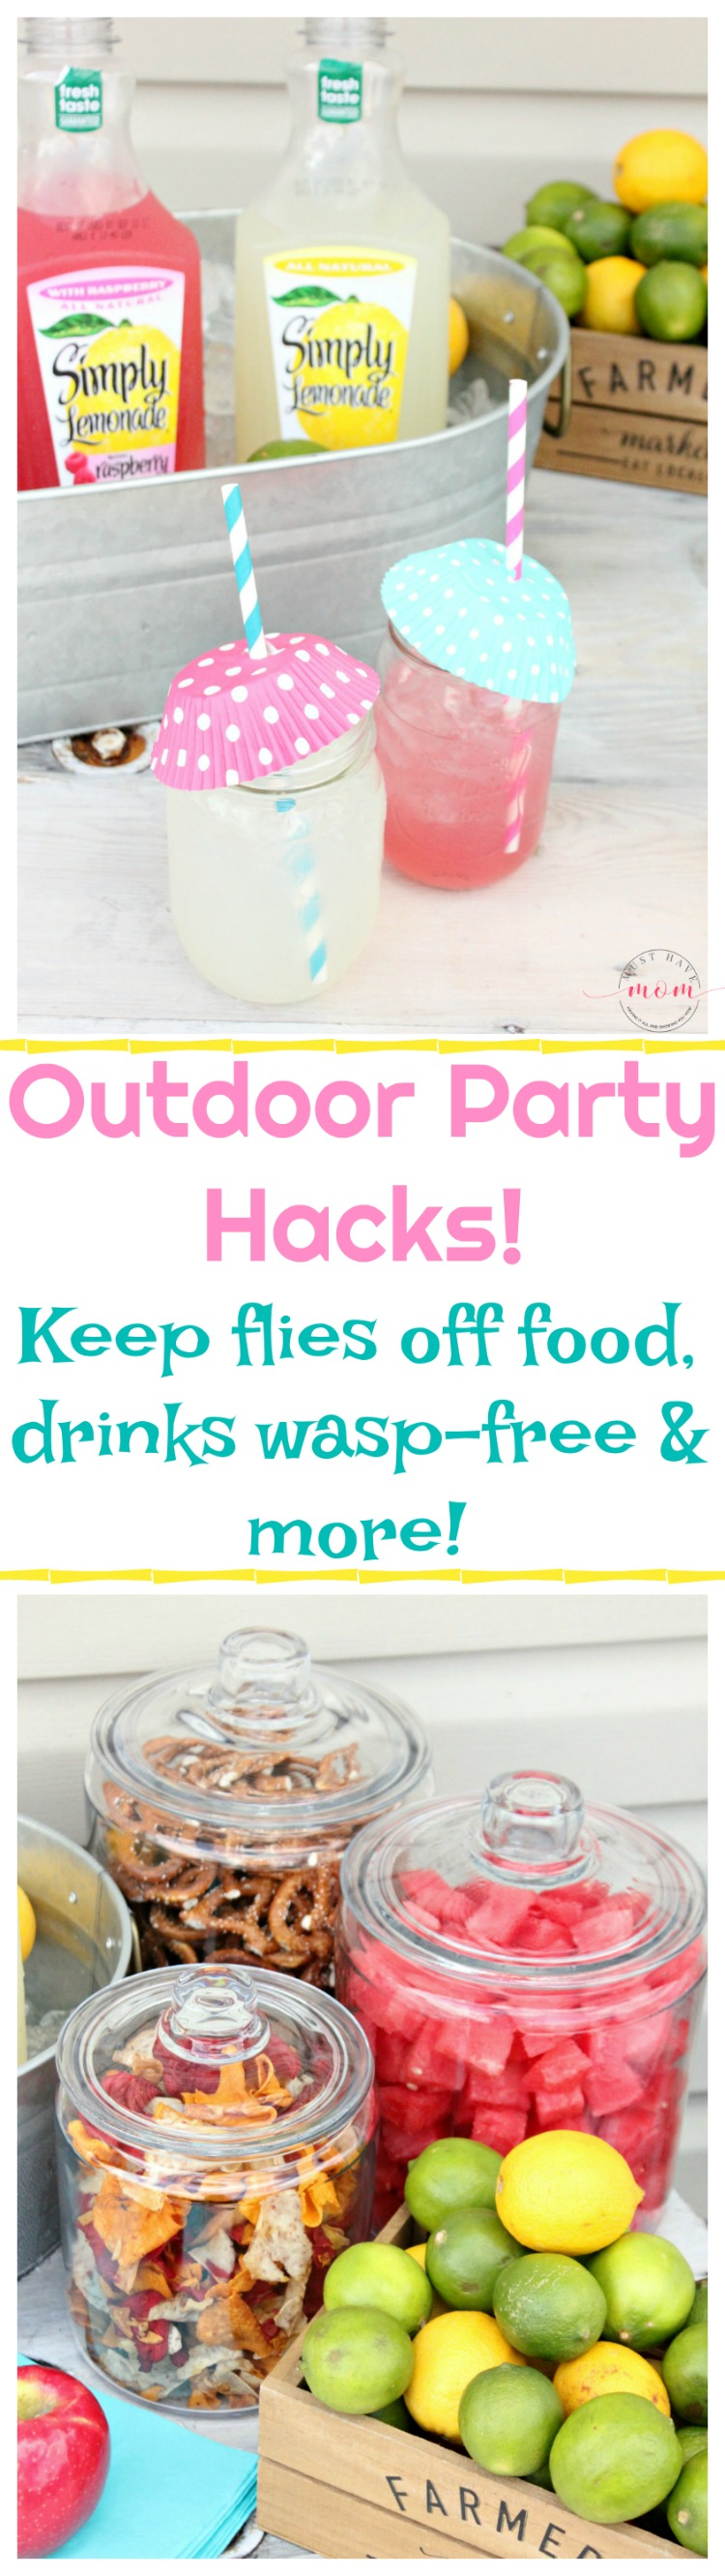 how to keep food hot at outdoor party